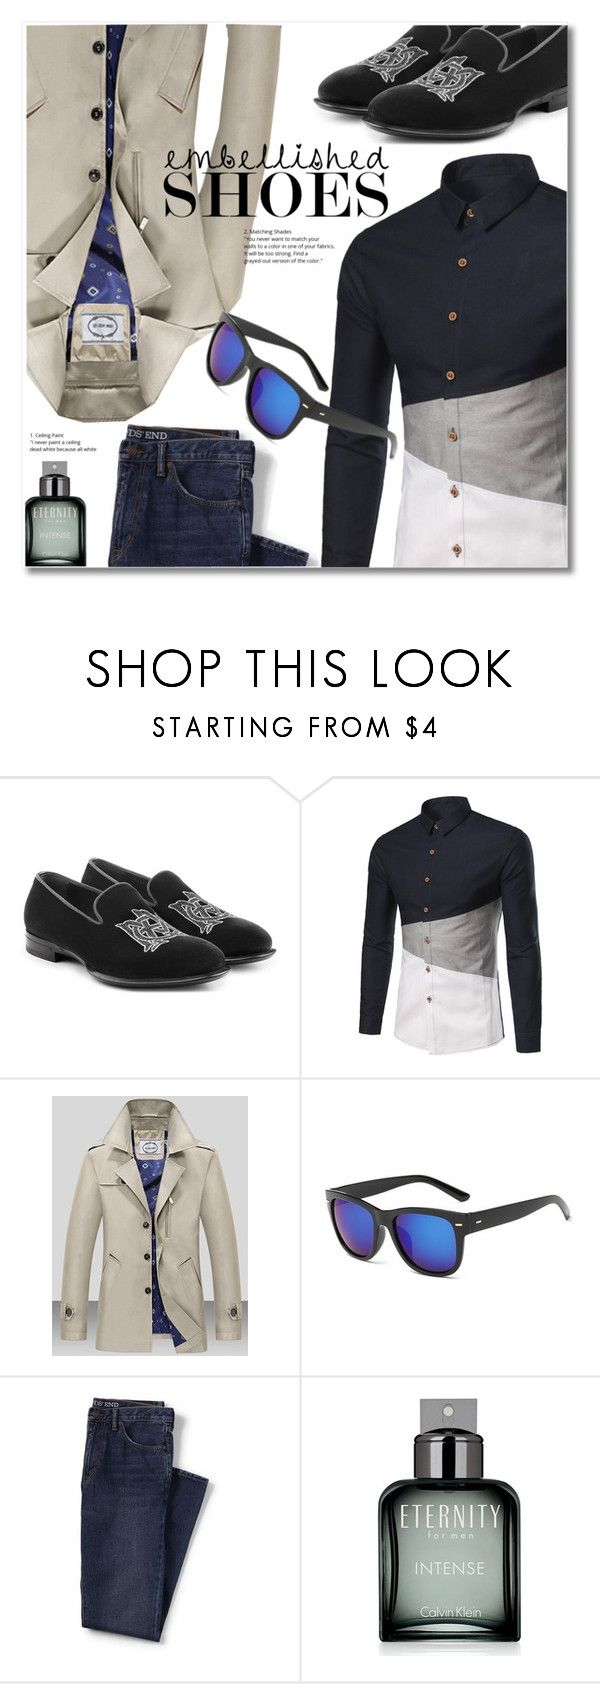 """Magic Slippers: Embellished Shoes"" by svijetlana ❤ liked on Polyvore featuring Alexander McQueen, Lands' End, Calvin Klein, men's fashion, menswear, embellished and rosegal"